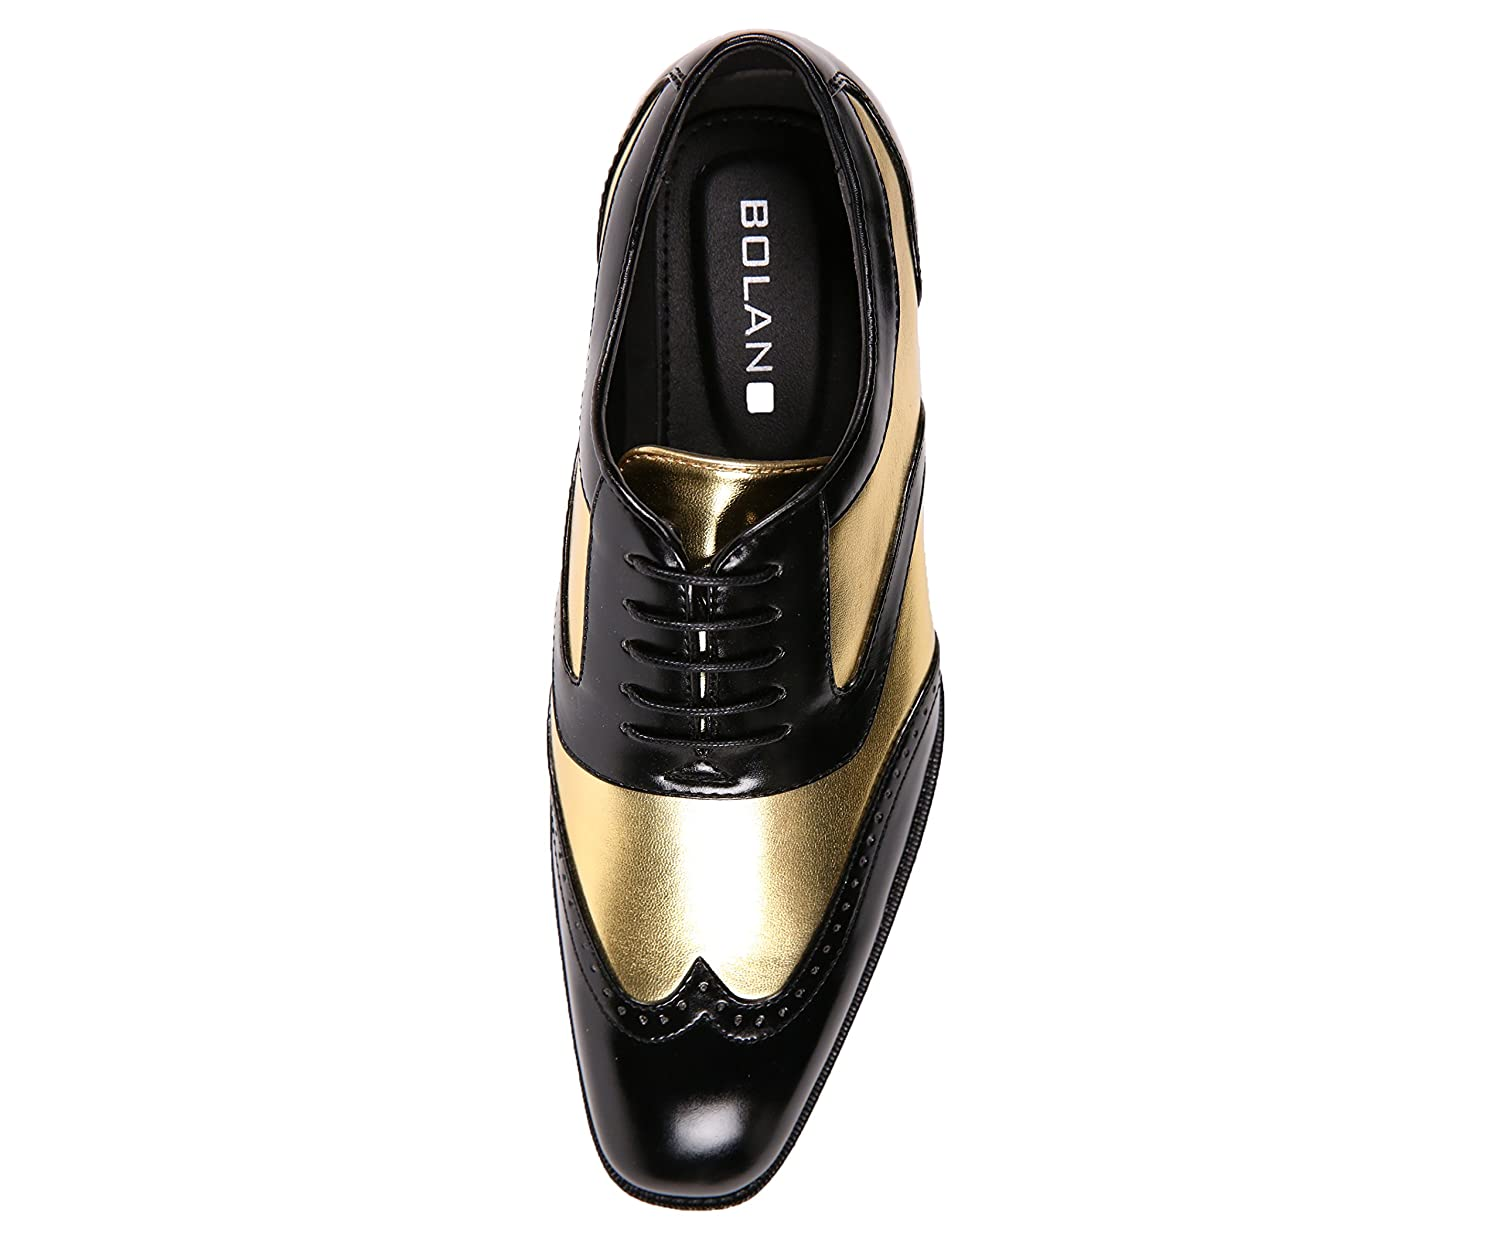 7eca2ca77c3cb Bolano Men's Two-Tone Metallic Black Smooth Lace up Oxford Dress Shoe, Wingtip  Spectator